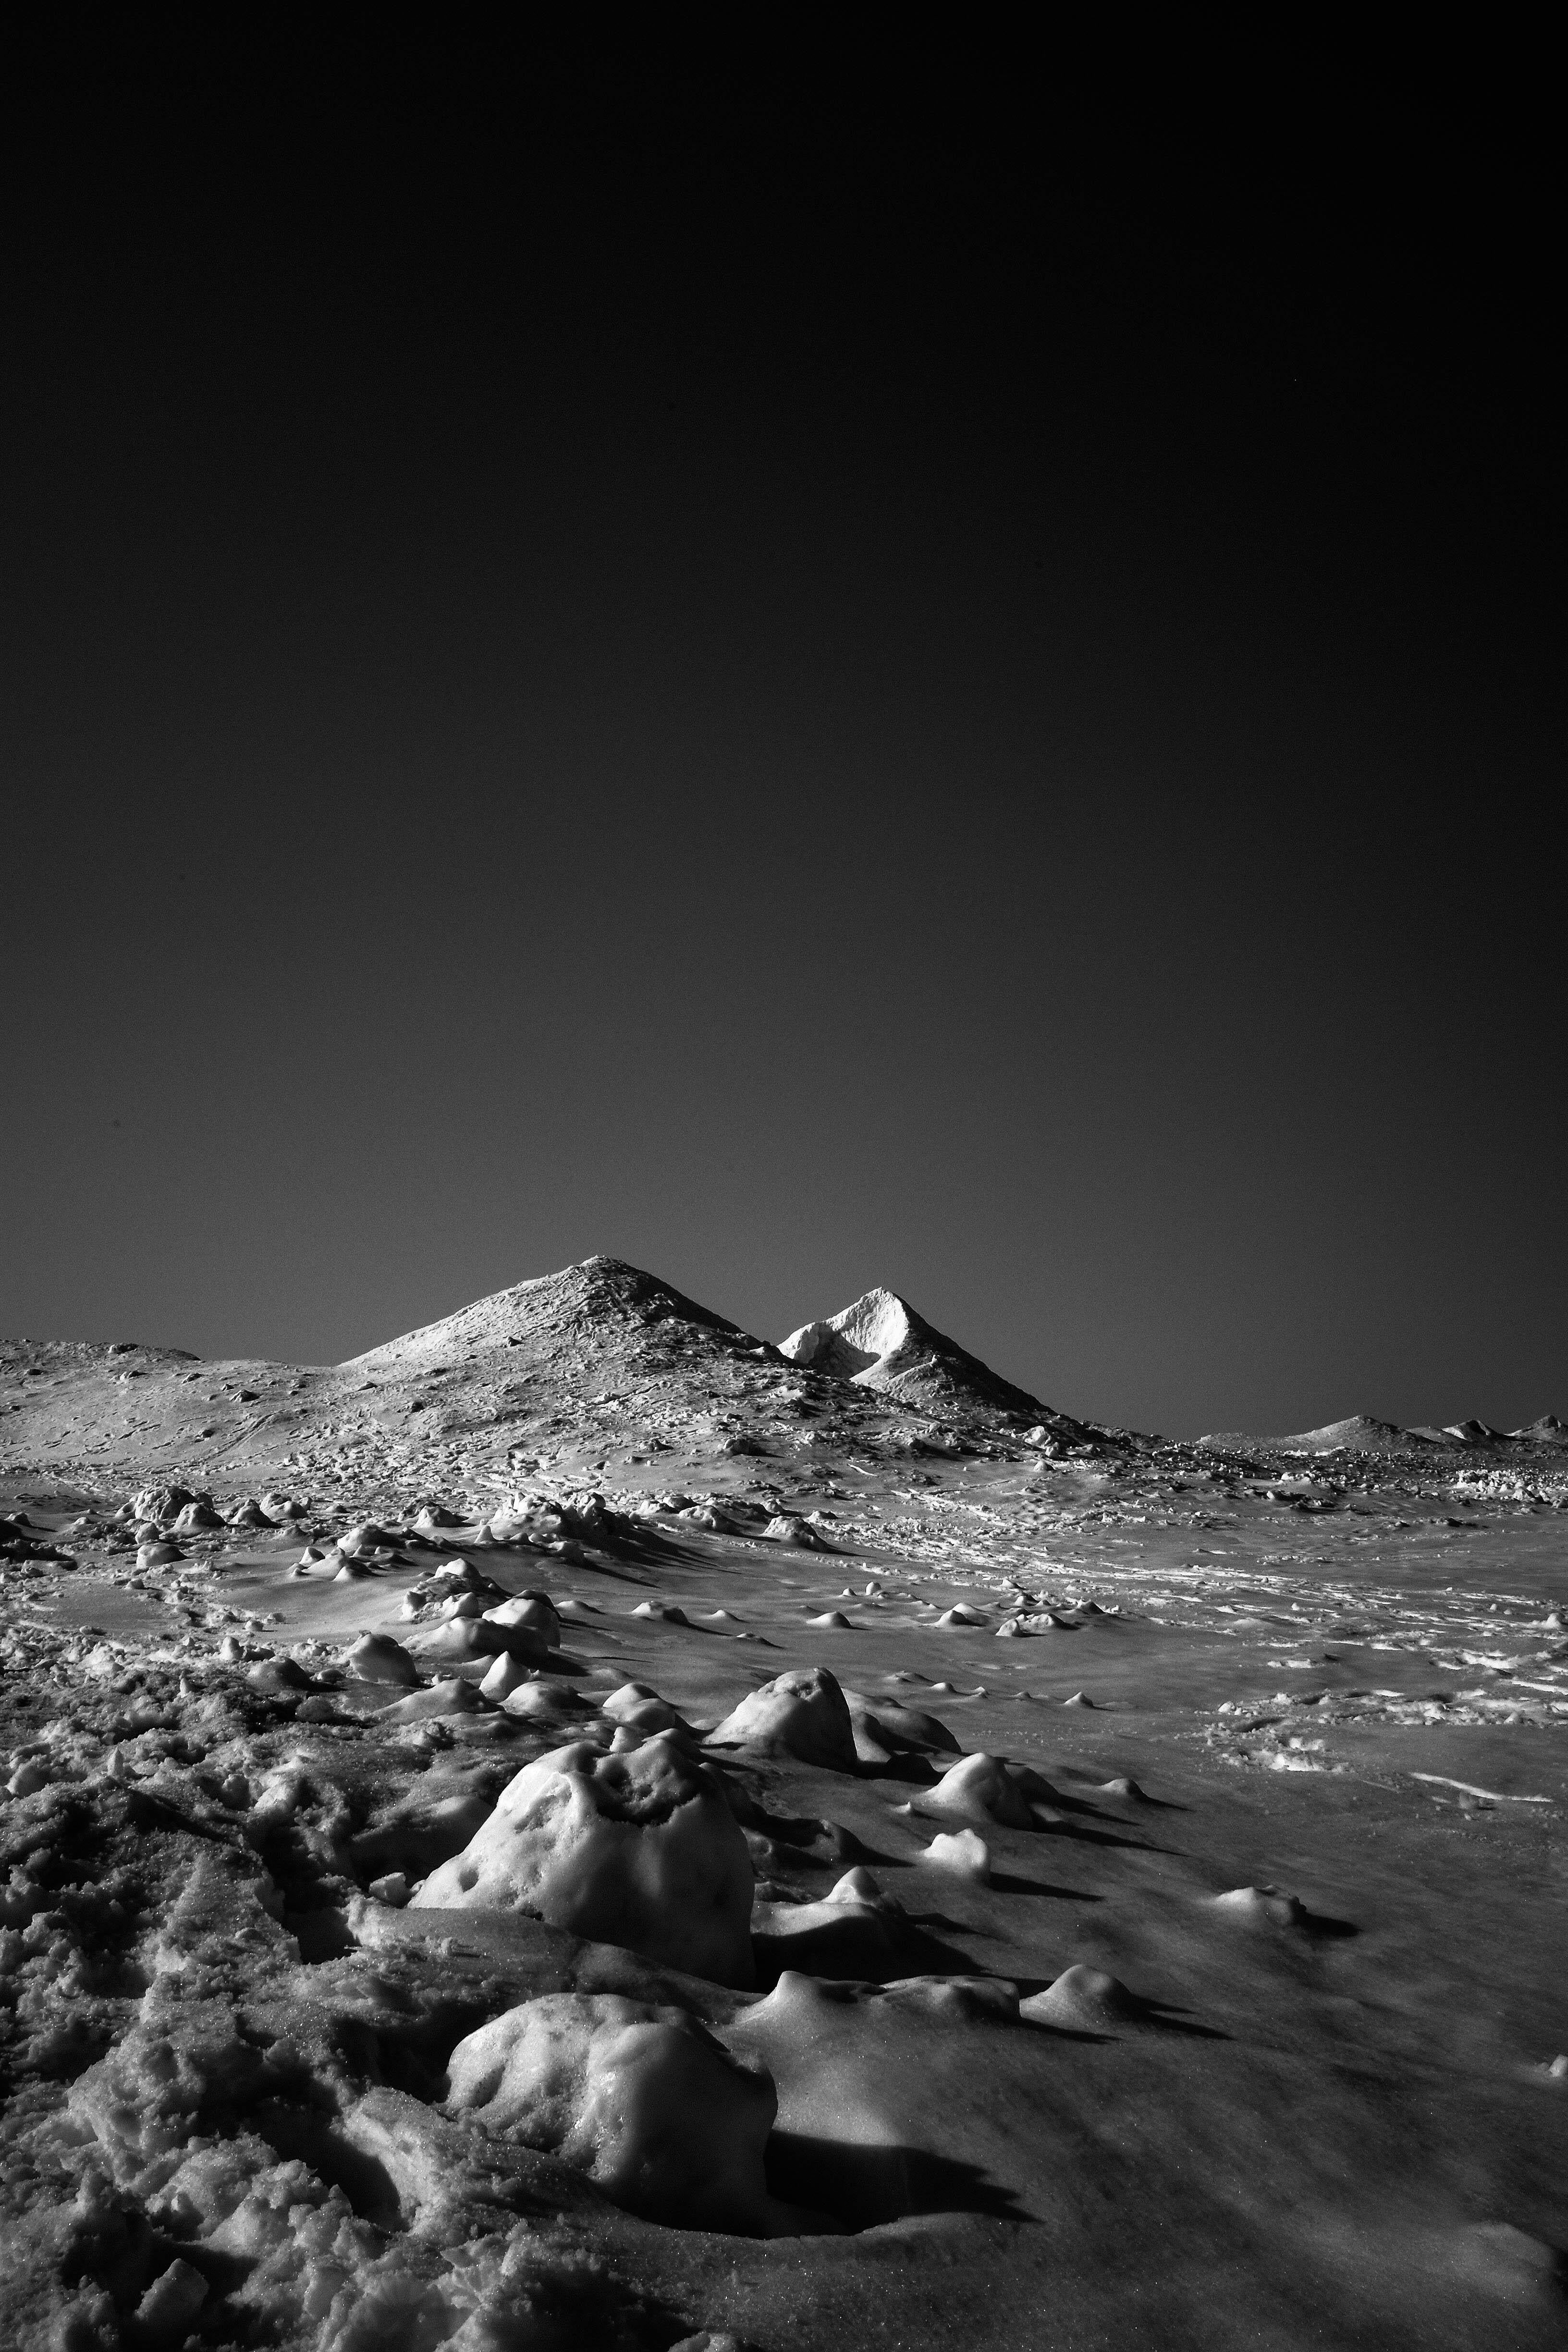 Mars on Earth, Michigan - Black & White Photo of A Sparse Snow Covered Landscape